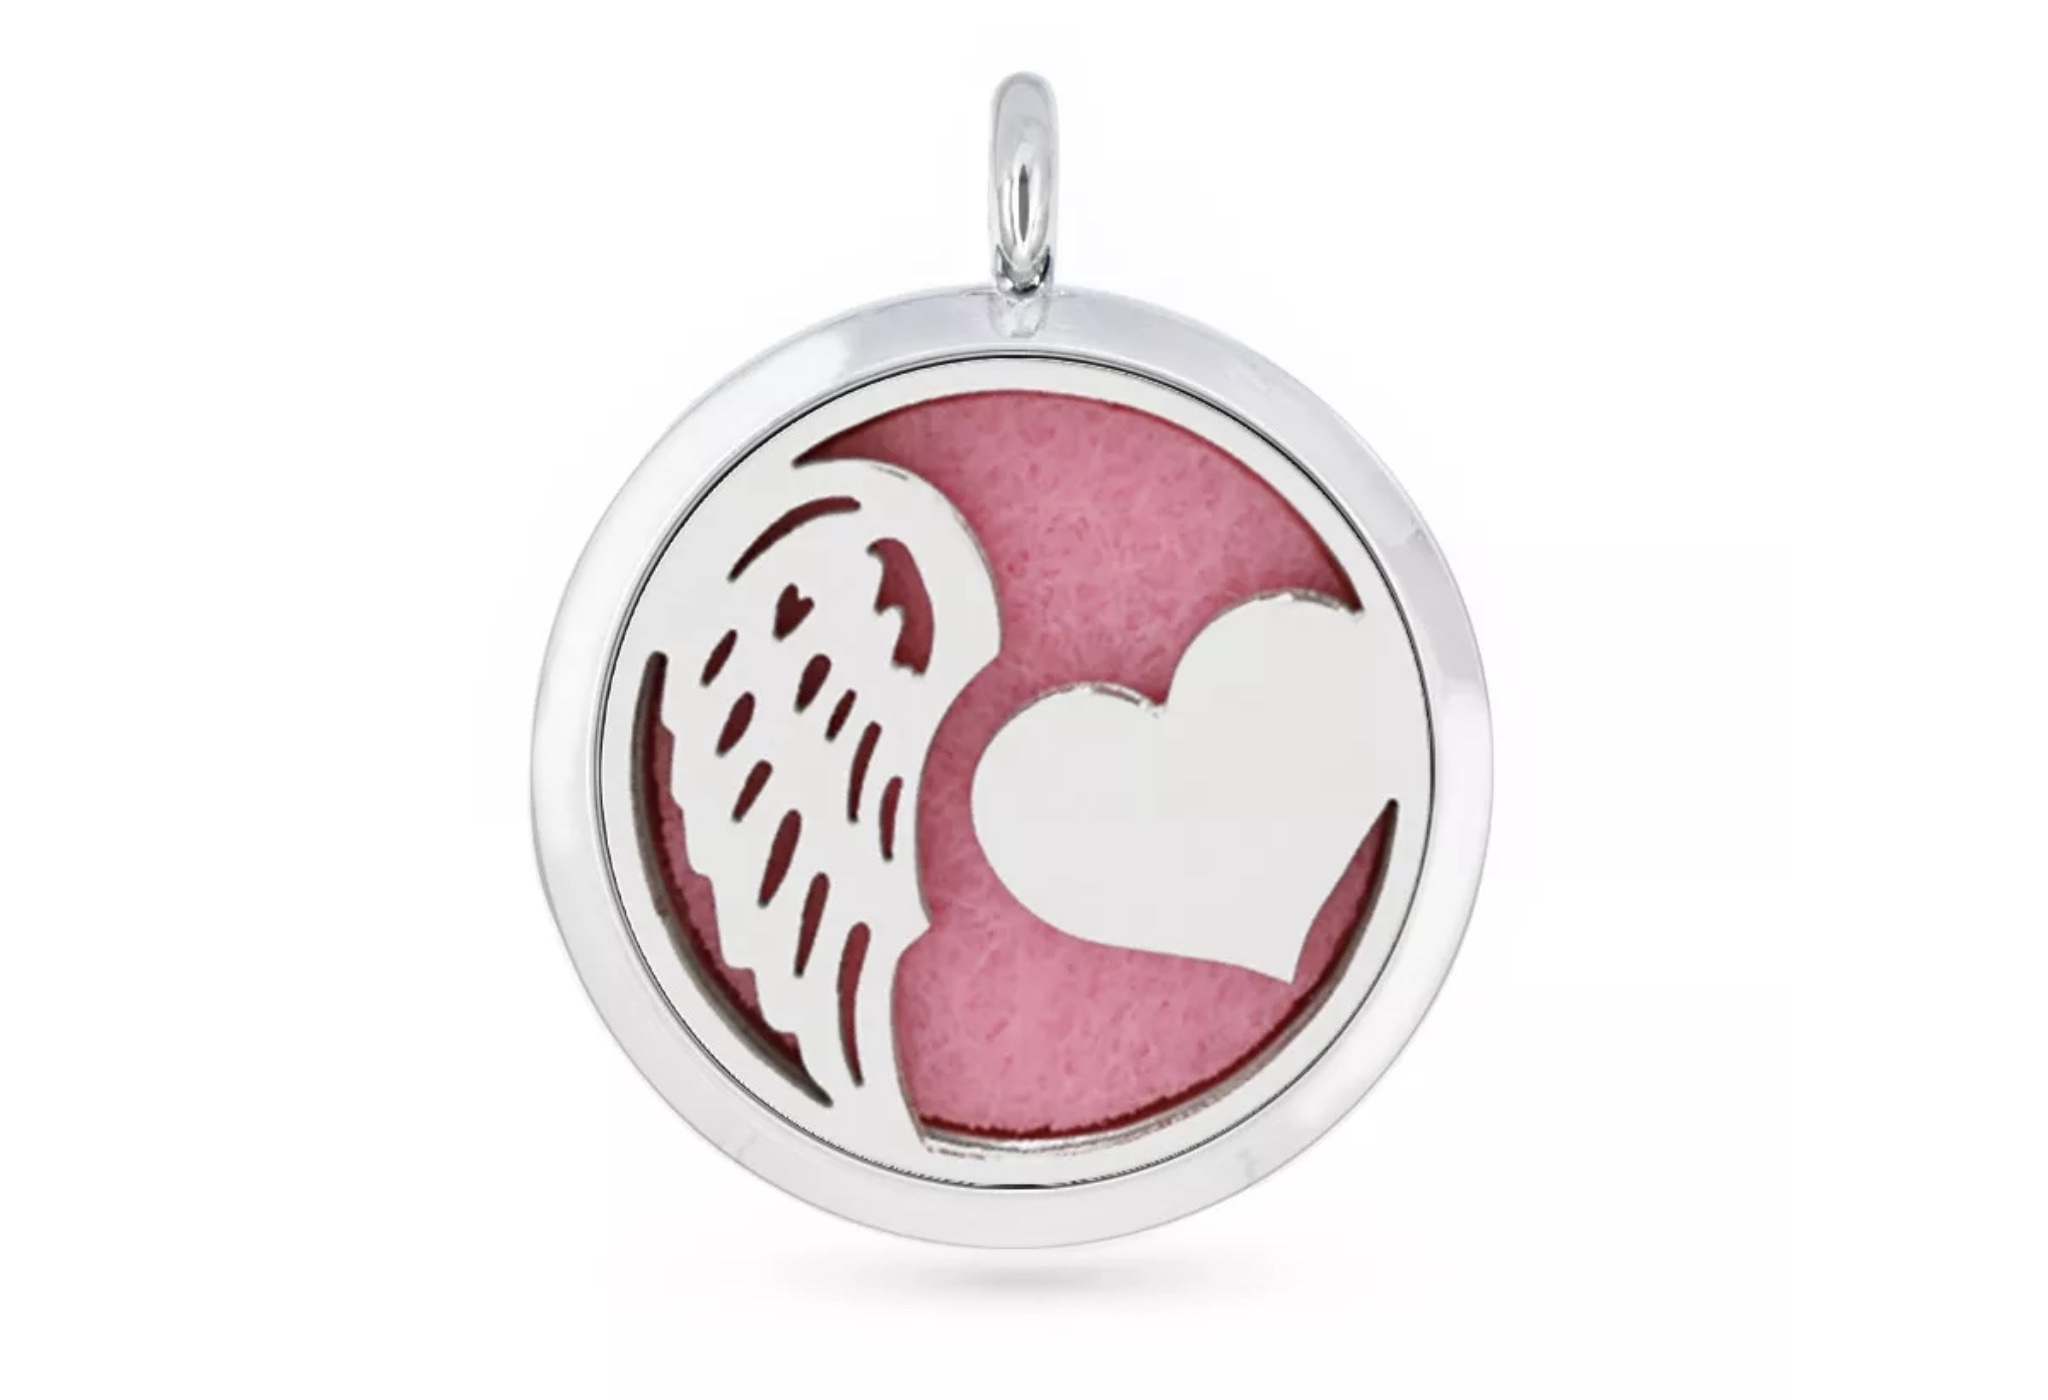 Aromatherapy Diffuser Pendant - Heart and wing - 30mm